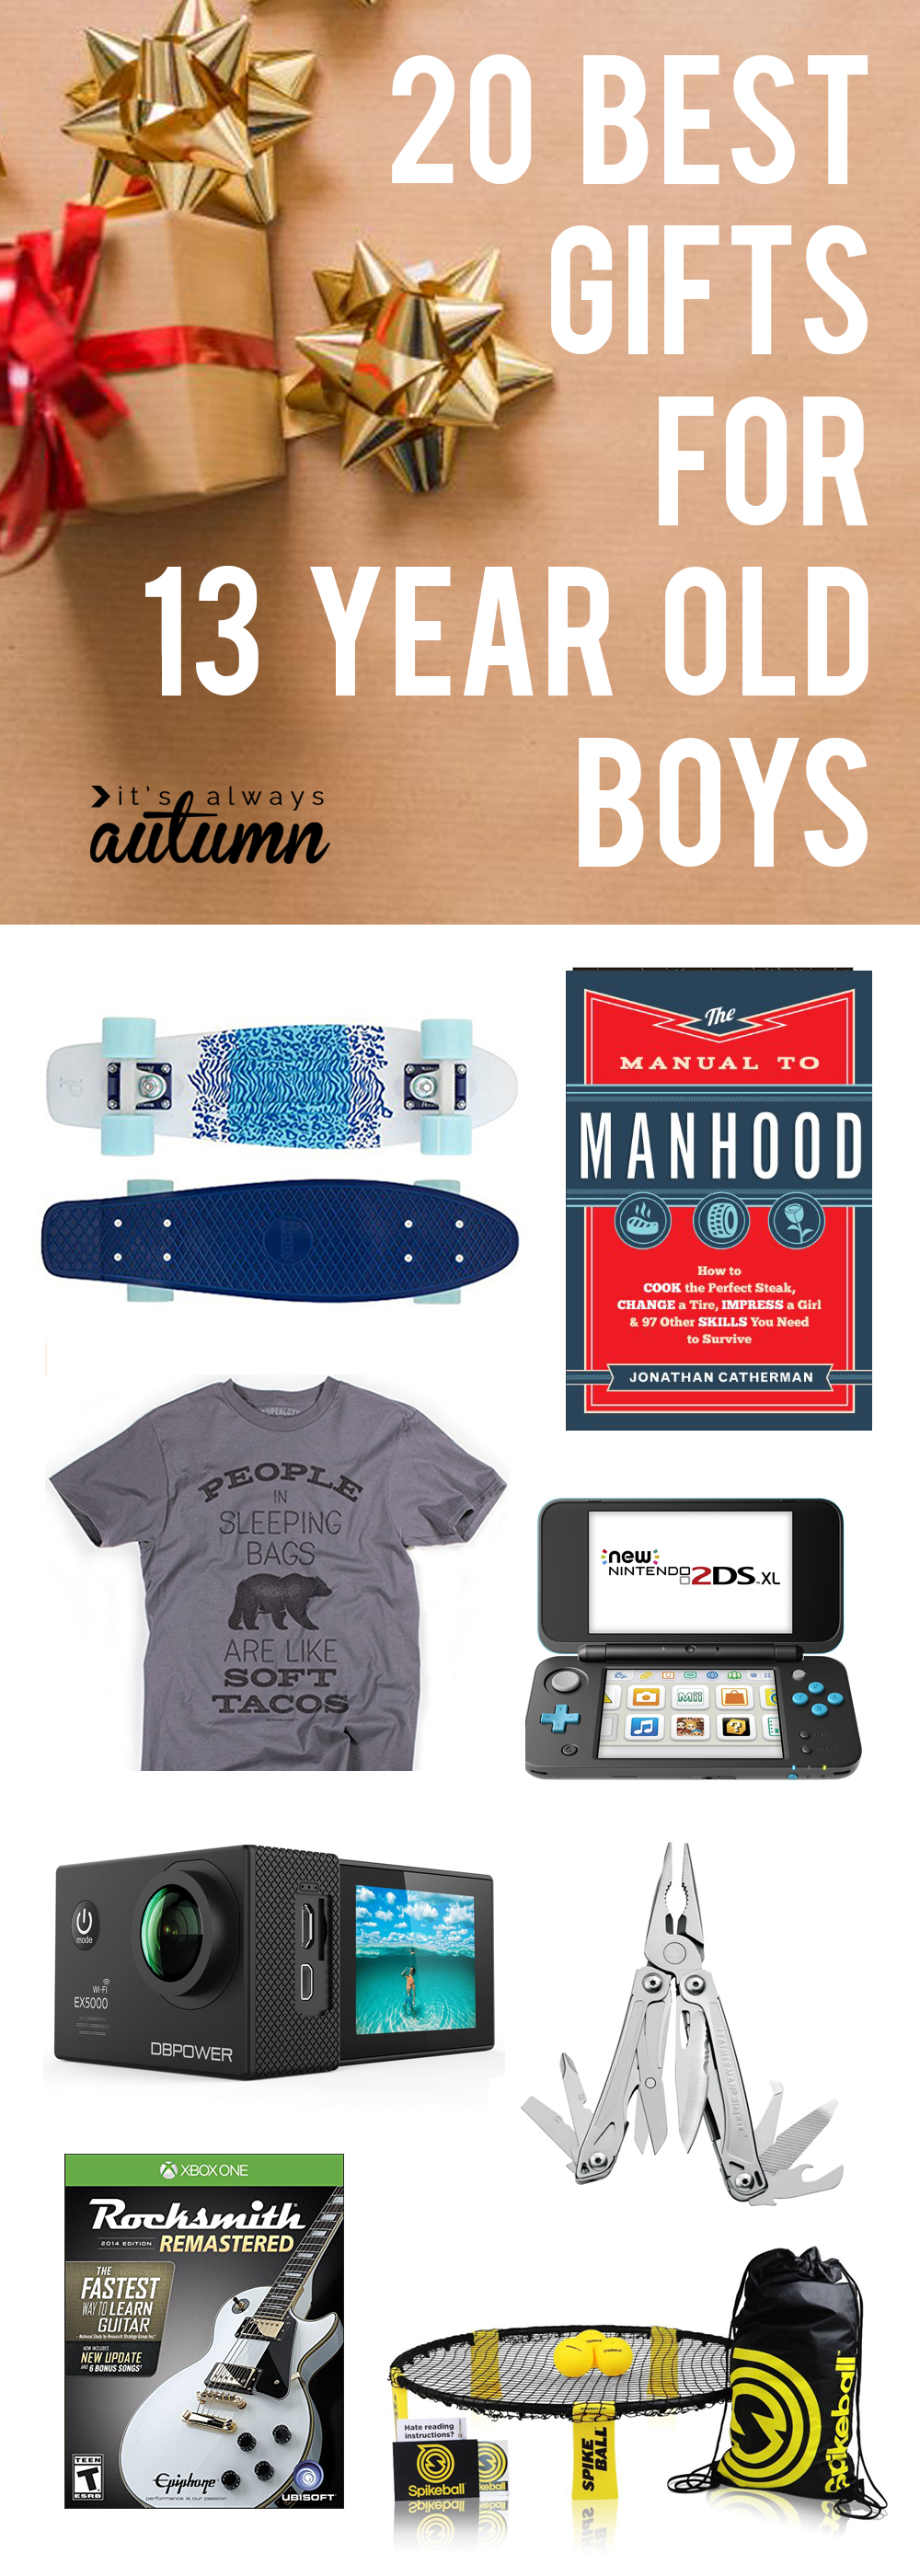 Best gifts for 13 year old boys! Great Christmas gift ideas for tween and teen boys ages 11-15.